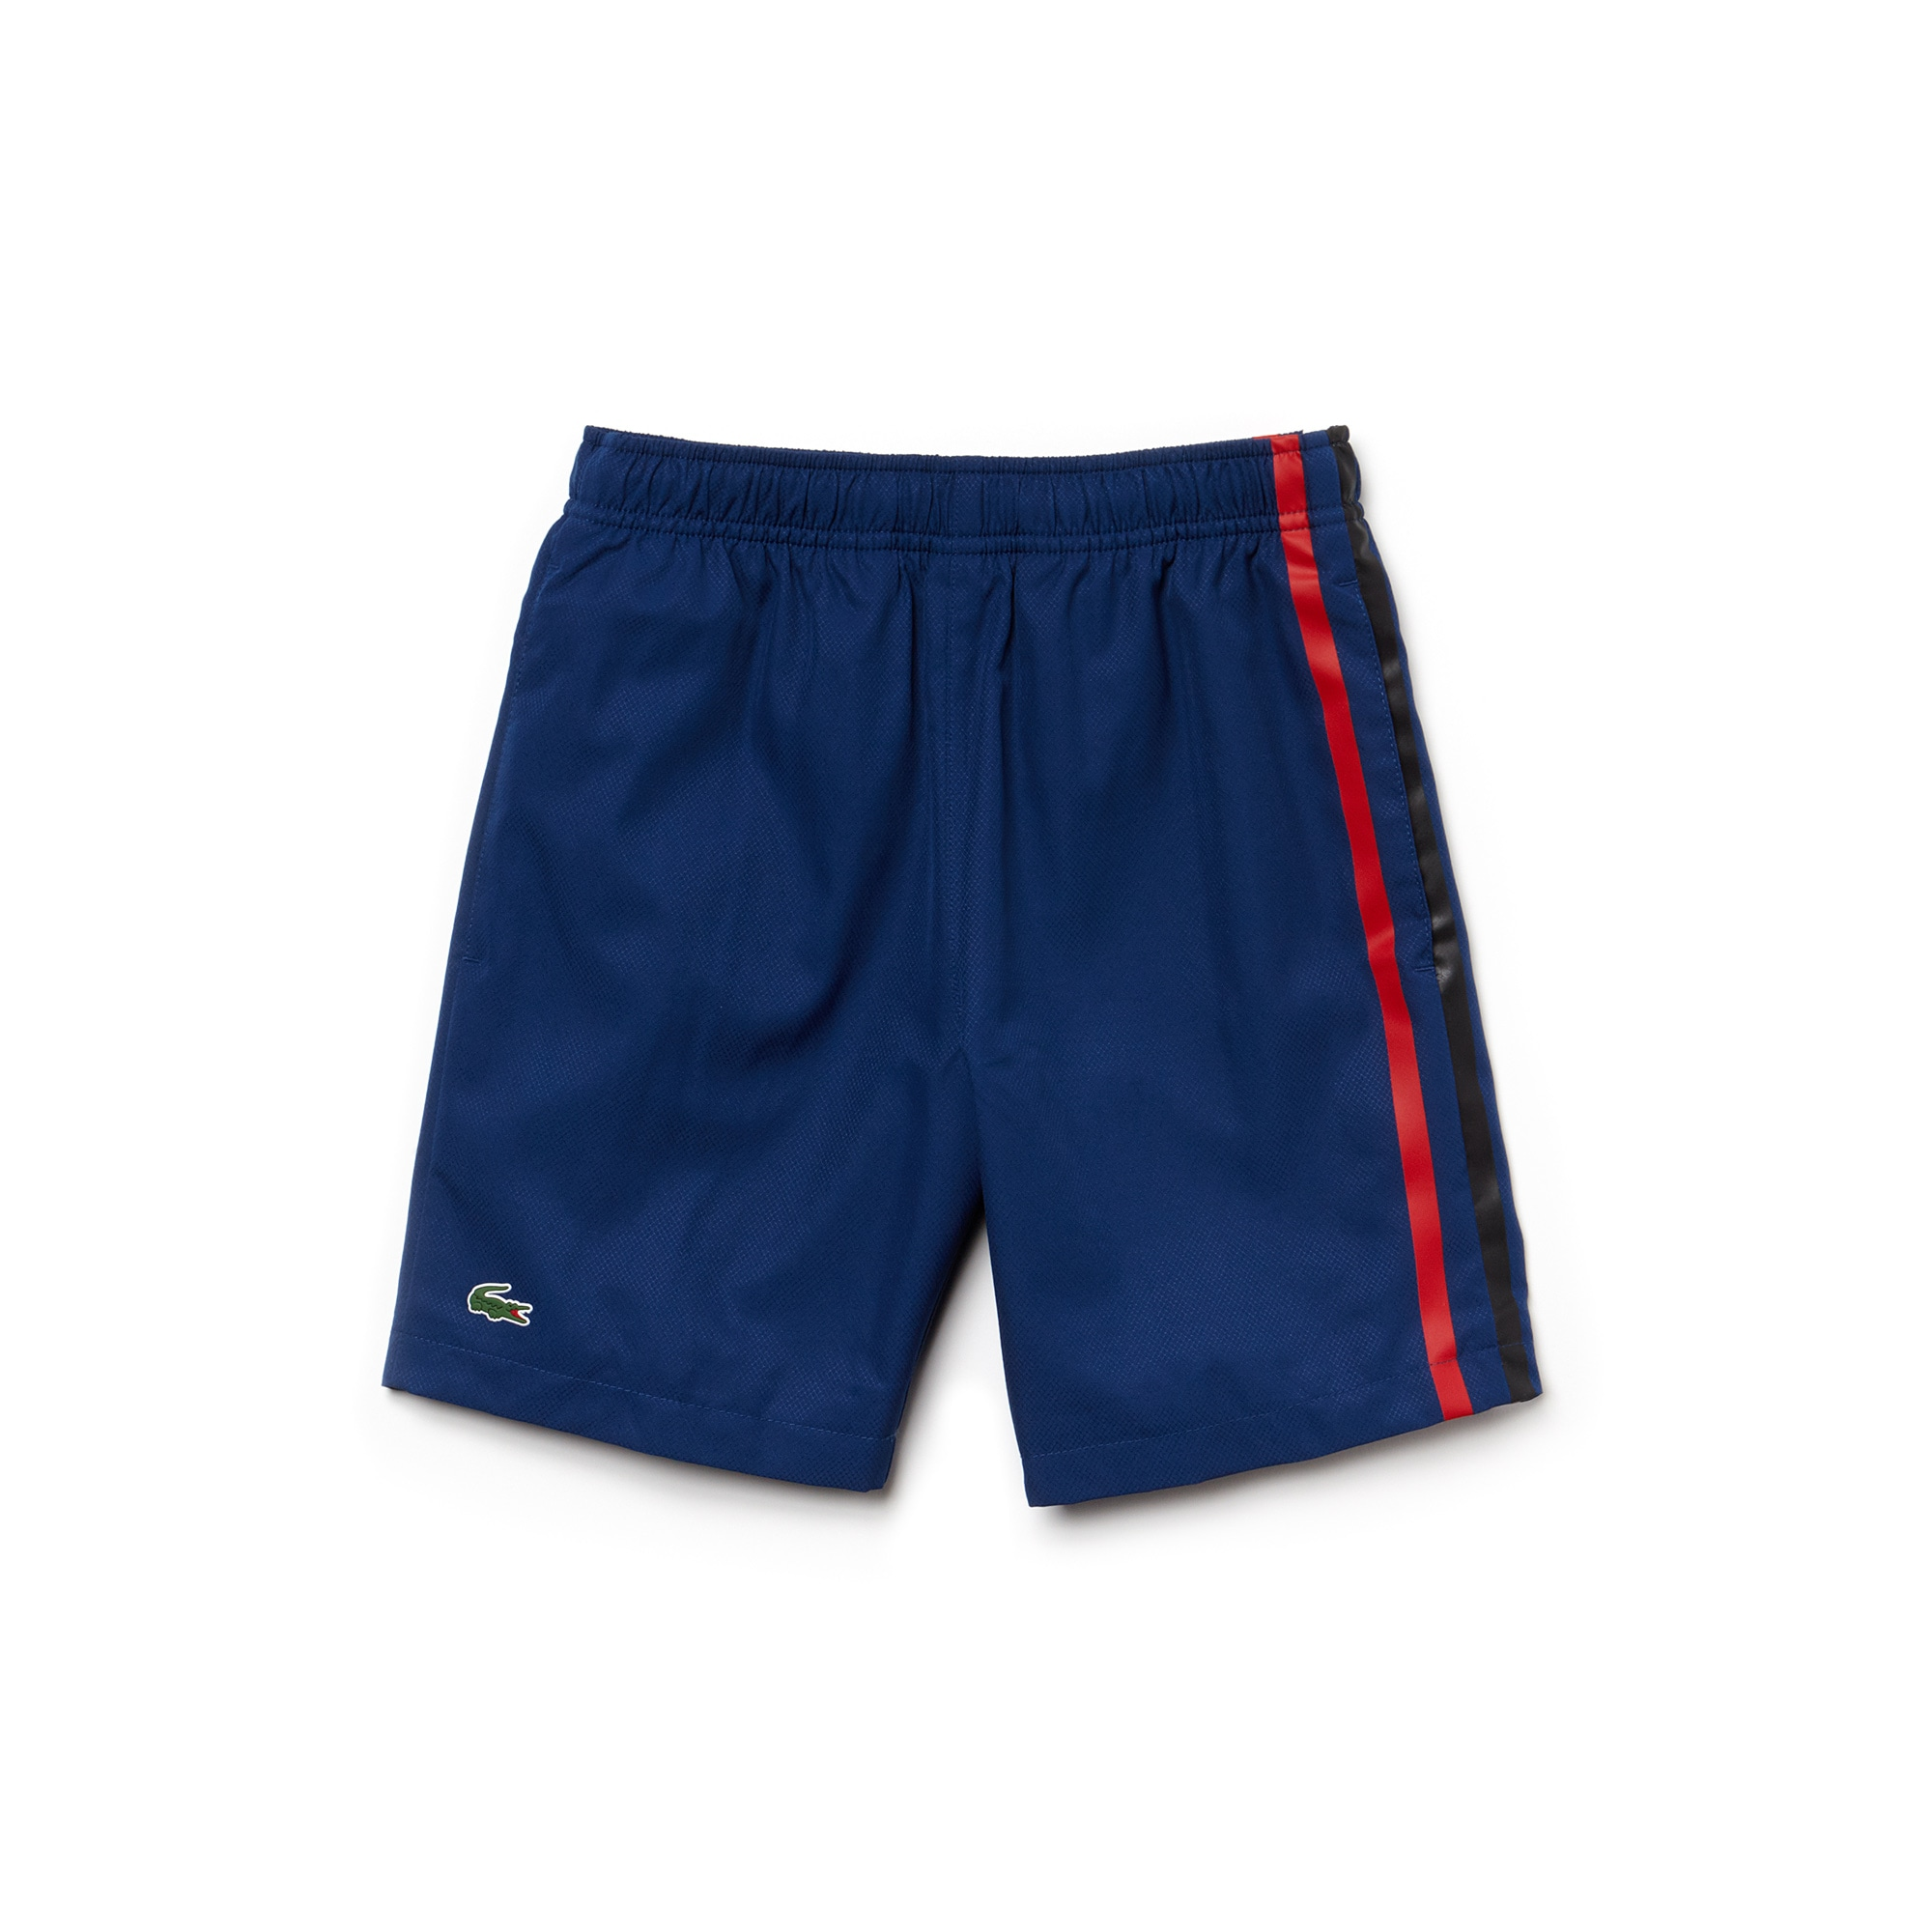 Boys' Lacoste SPORT Colored Bands Taffeta Tennis Shorts